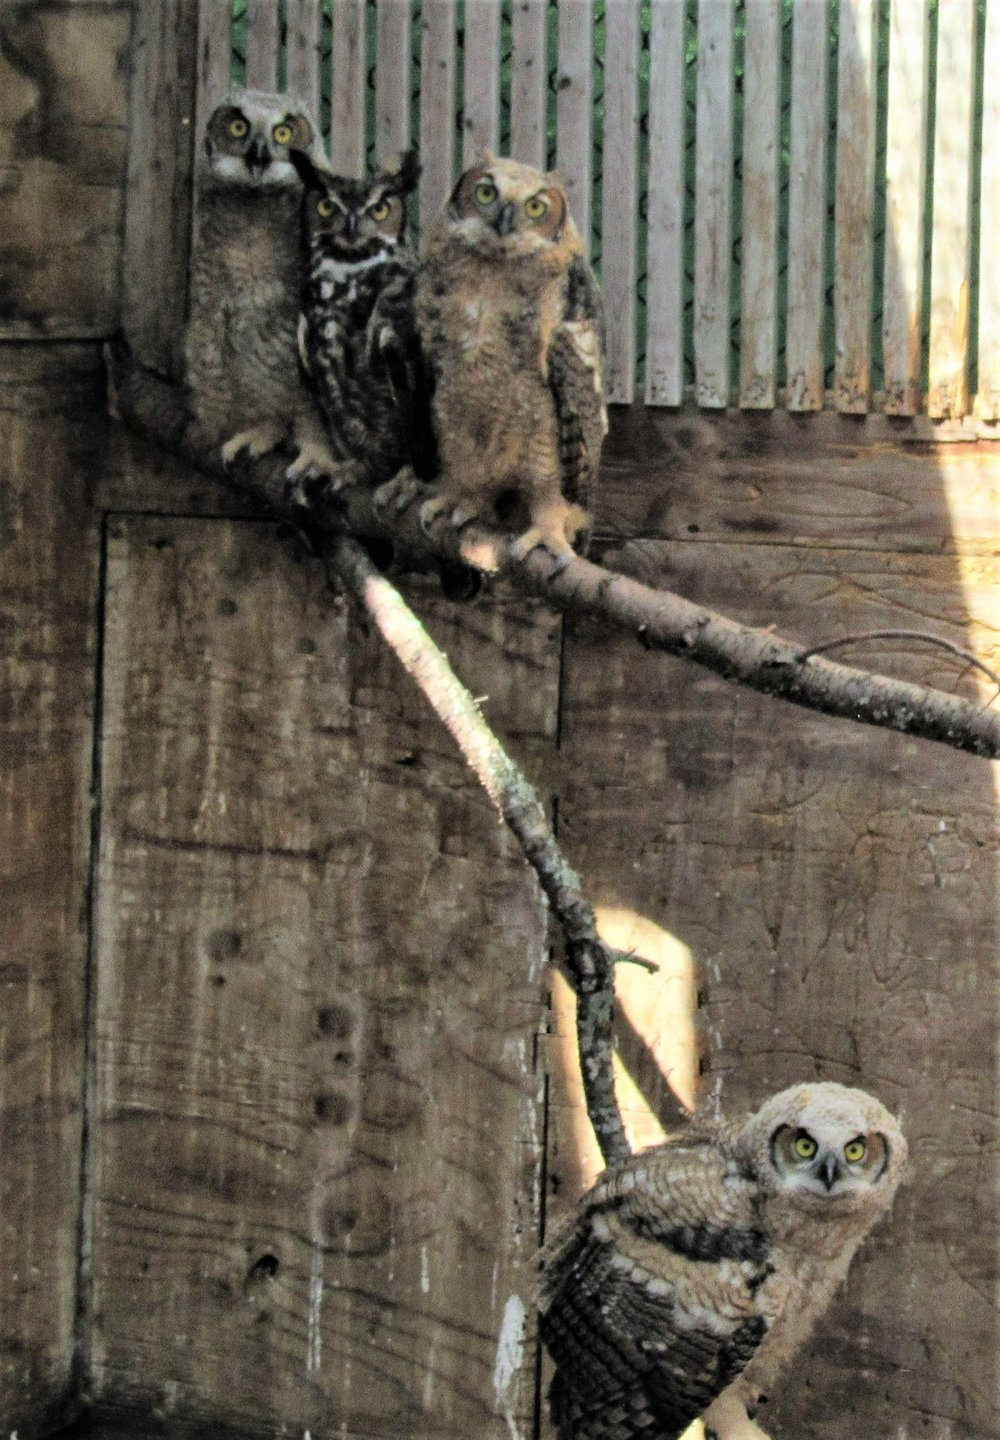 Our male foster dad great horned owl does not have a sense of humor when we photographed his chicks.